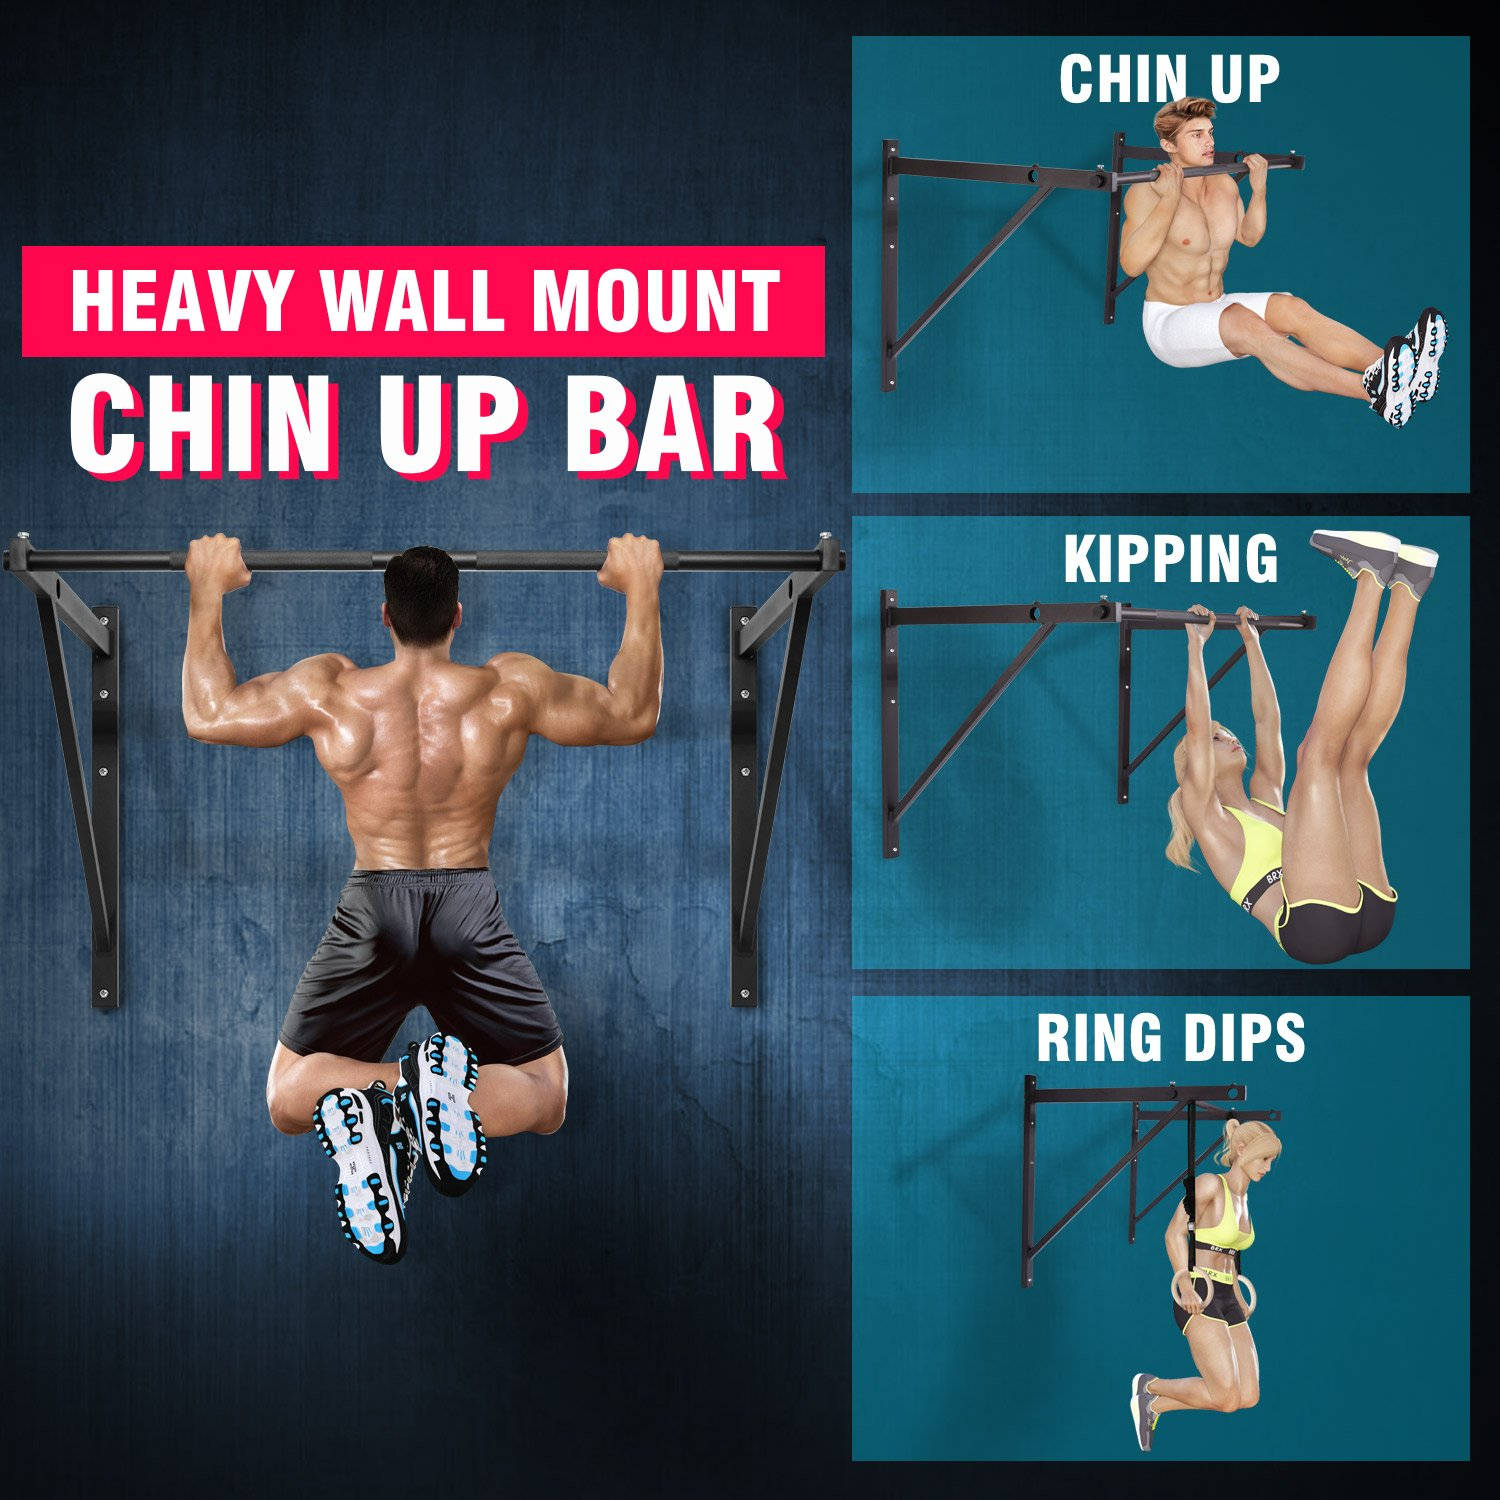 eac398c3f6a Amazon.com   Yes4All Wall Mounted Pull Up Bar for Crossfit Training - Chin Up  Bar Pull Up Bar Wall Mount - Support up to 500 lbs (Black)   Sports    Outdoors